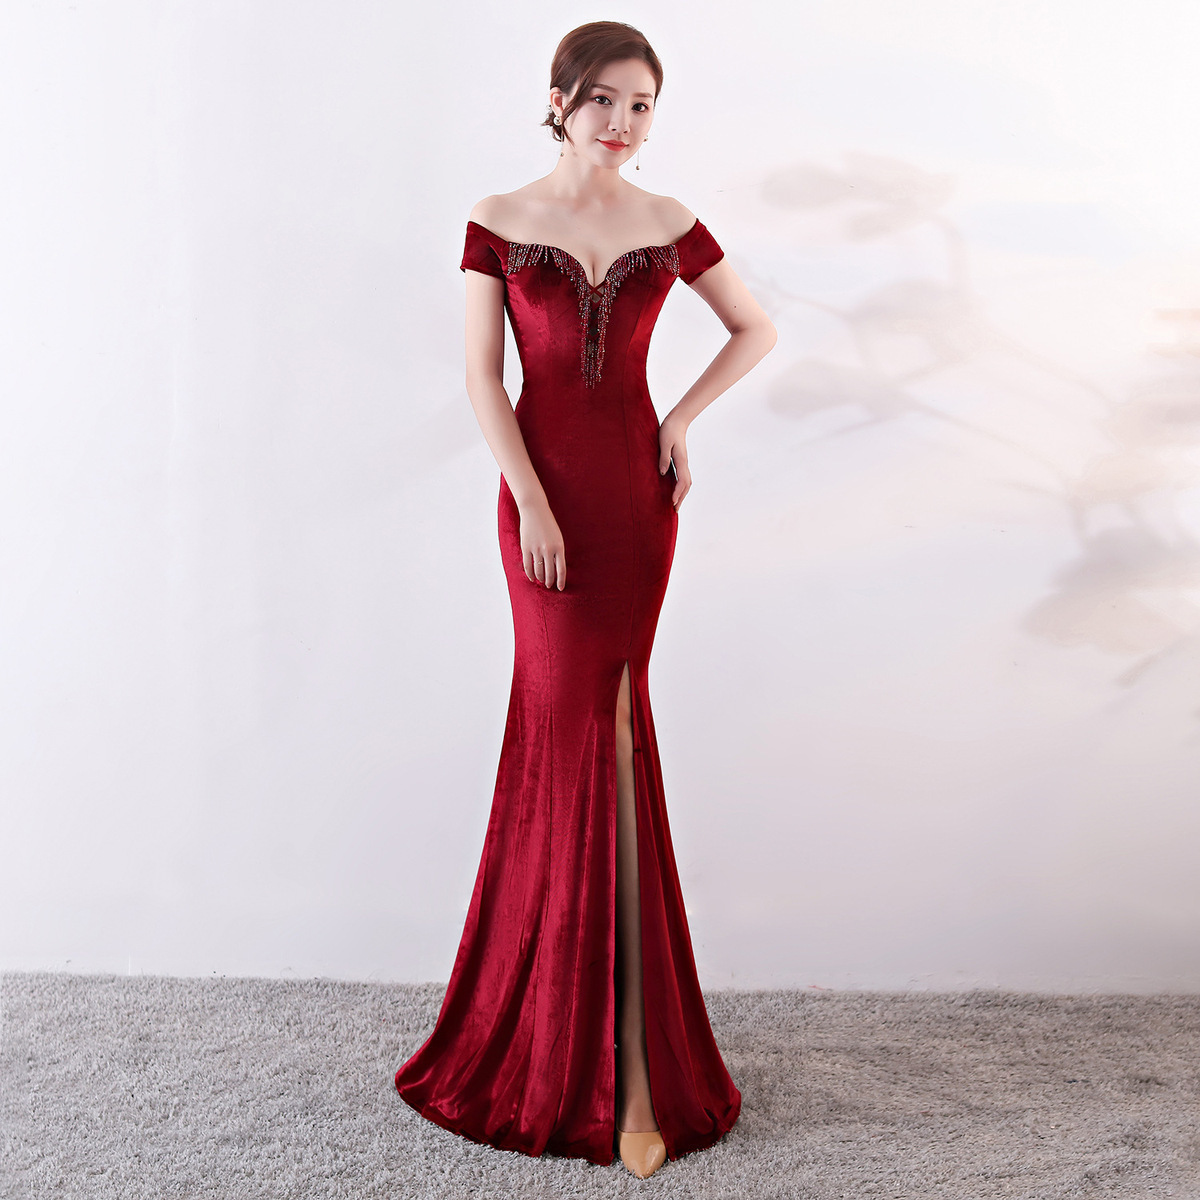 Velvet Long Evening Dress 2020 Off Shoulder Robe De Soiree Party Ladies Sexy Noble Prom Slit Vestido Largo Fiesta Noche Elegante